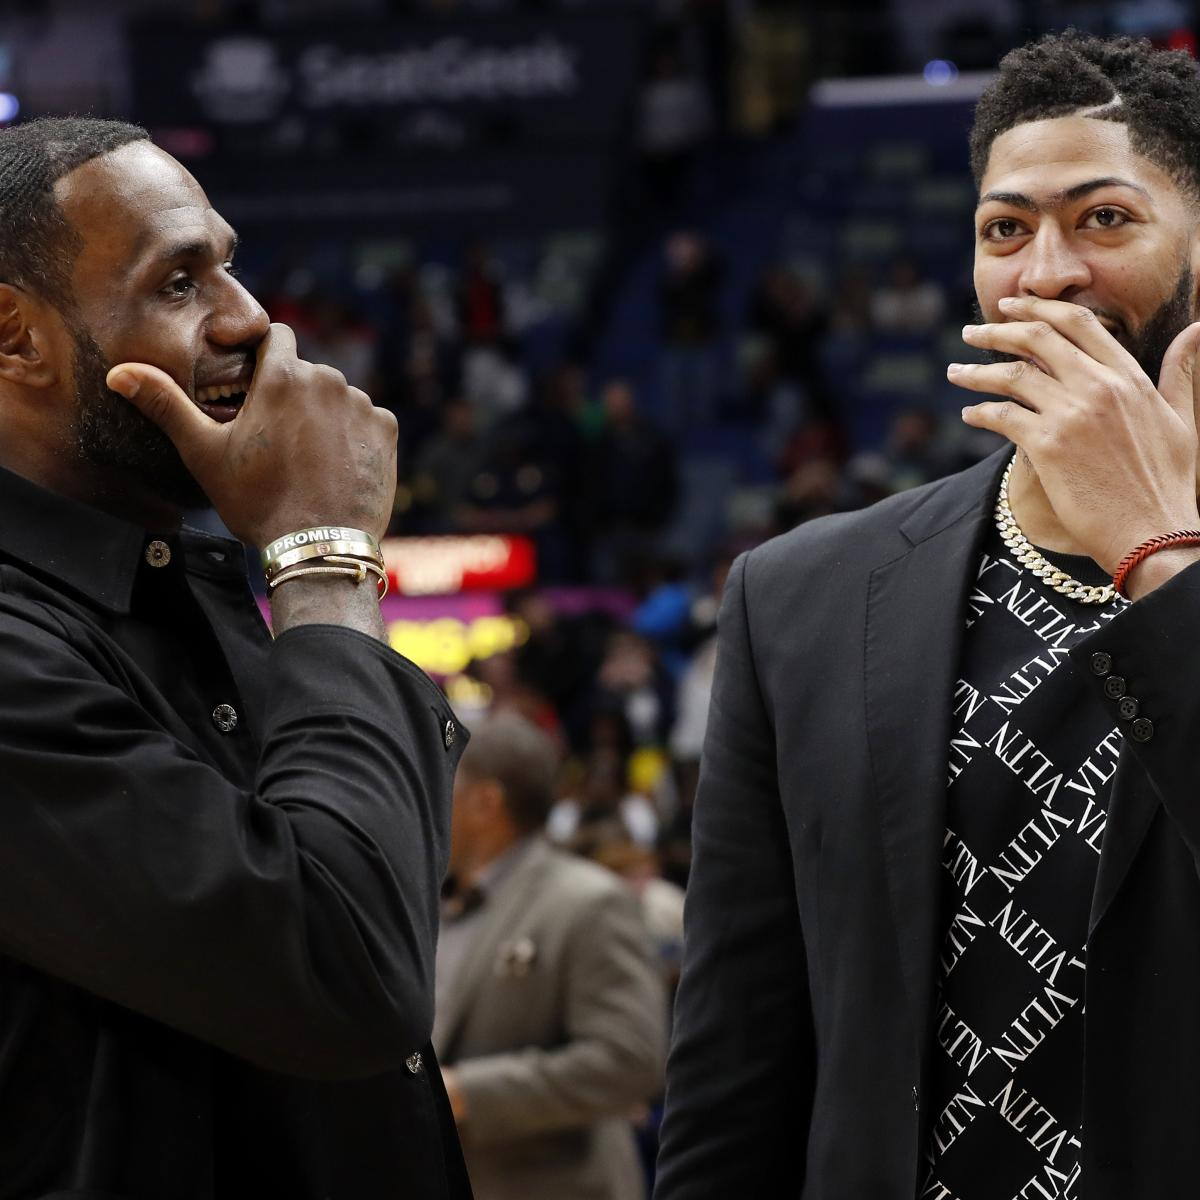 Anthony Davis Became Lakers' 'Only Chance to Get a Star' Next to LeBron in LA